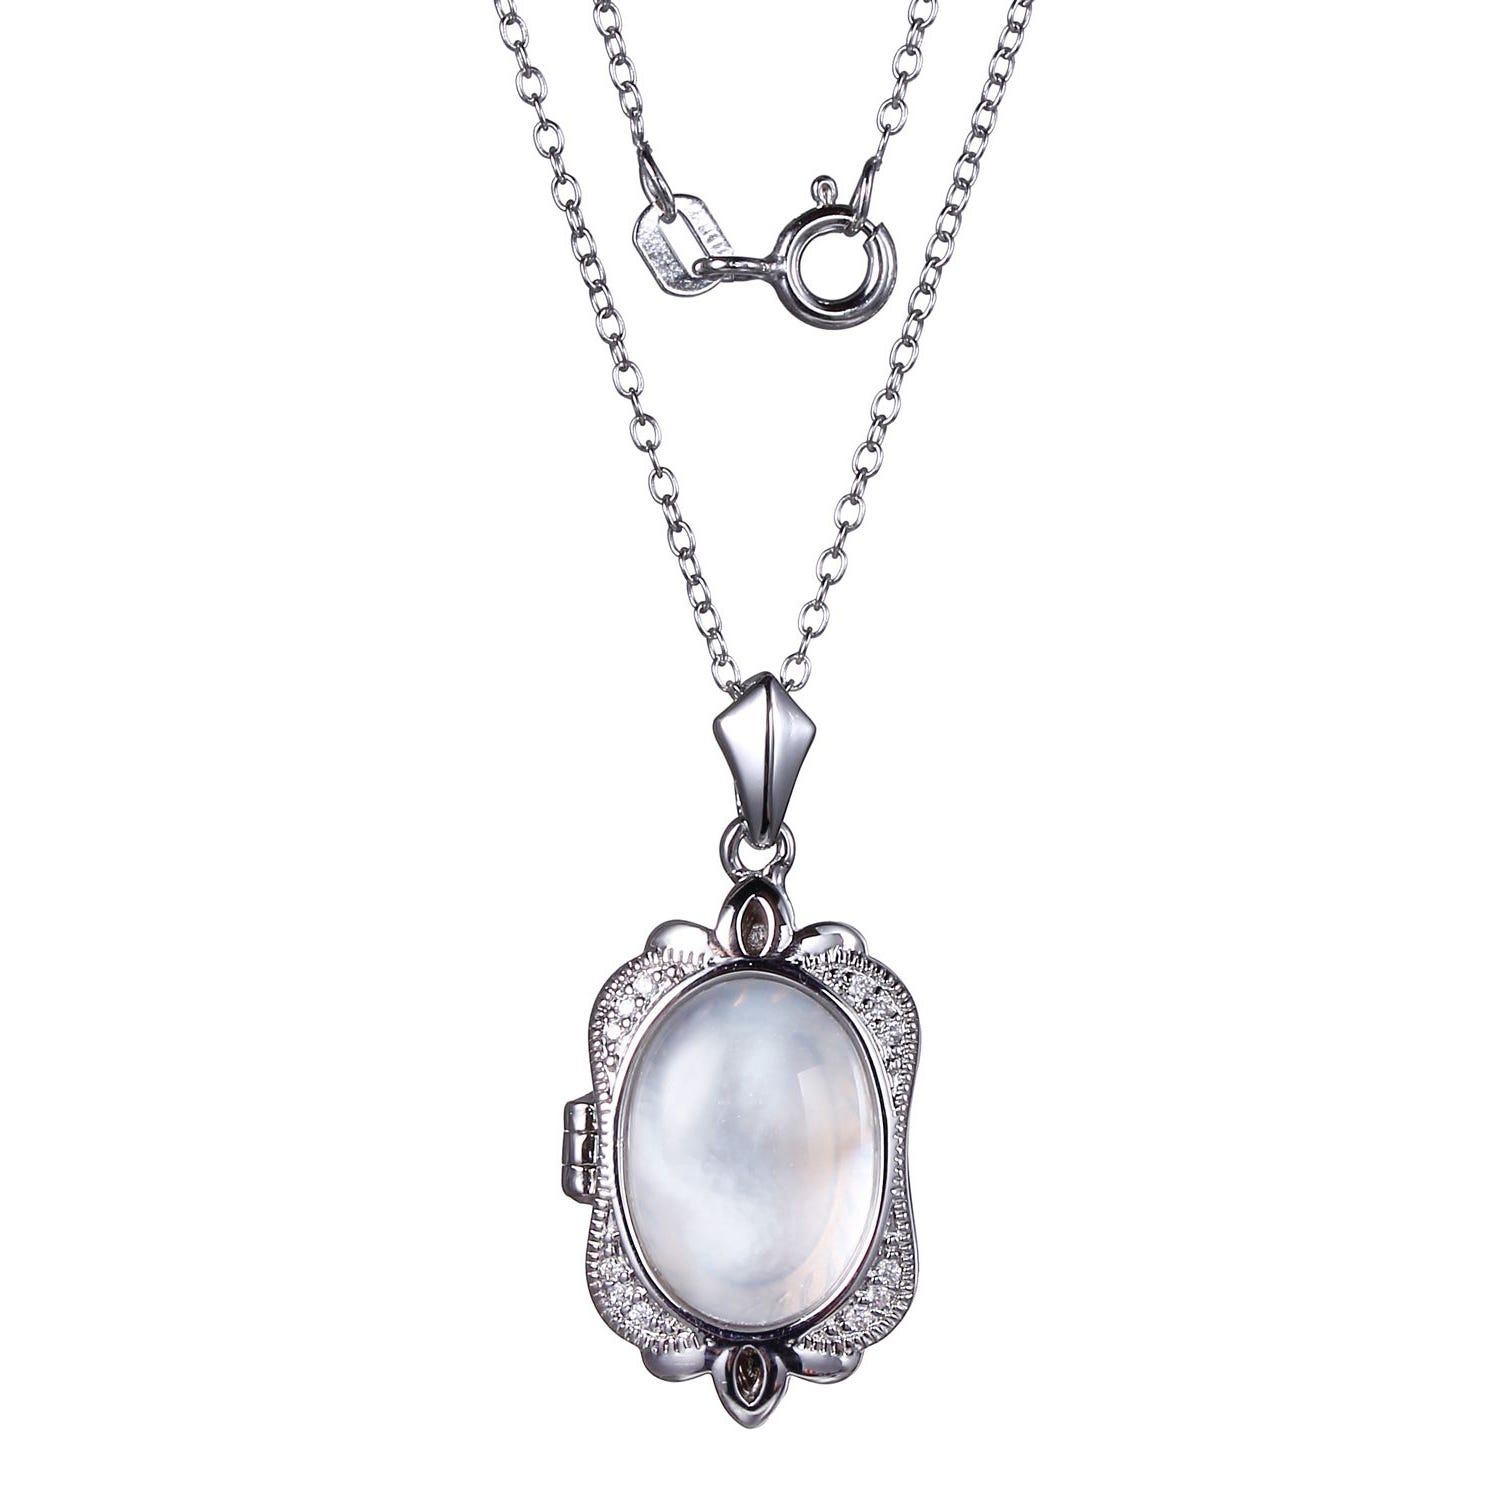 Genuine Oval Cabochon White Mother-of-Pearl Locket with 18in. Rolo Chain in Rhodium Plated Sterling Silver